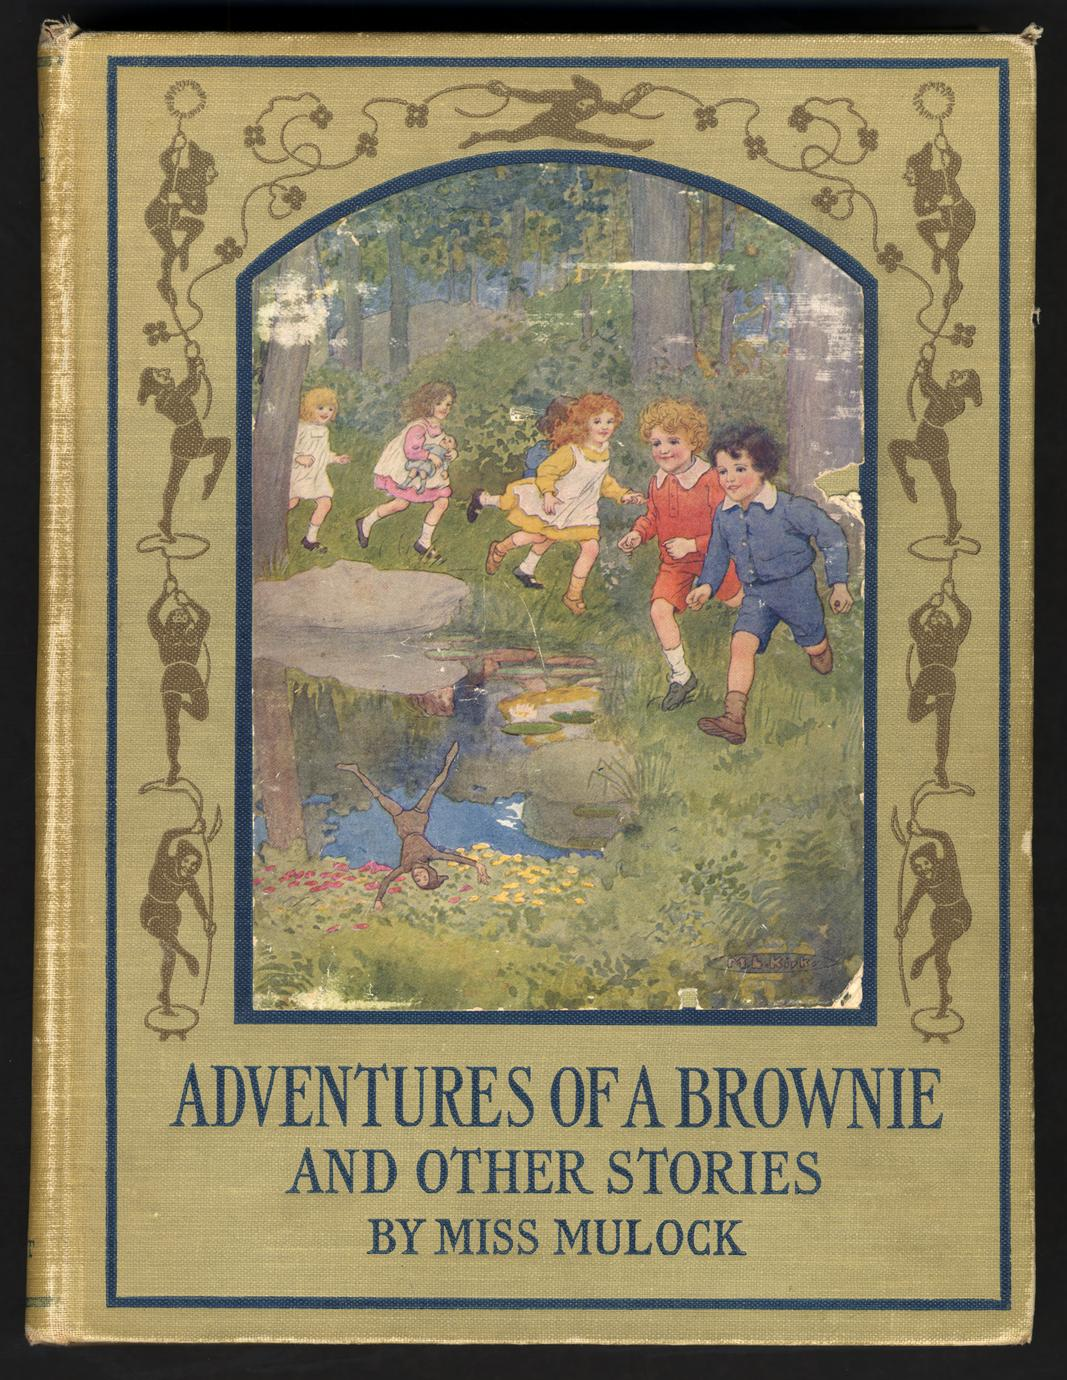 The adventures of a brownie (1 of 4)